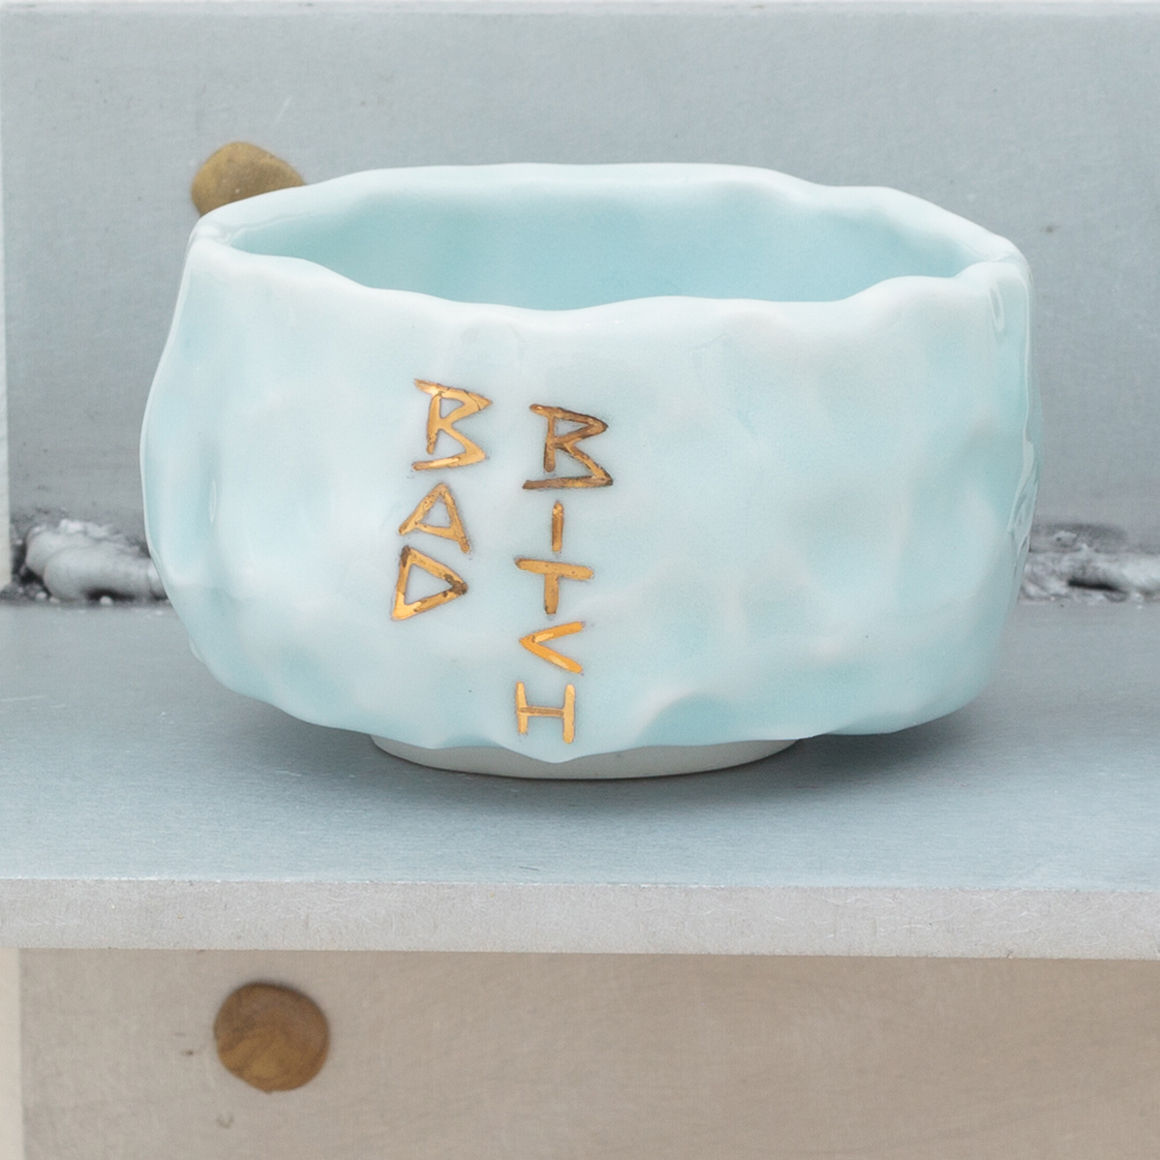 "<p><span class=""name"">Patrice Renee Washington</span><br><em>Bad Bitch Cup (3)</em><span class='media'>Glazed porcelain, gold luster, aluminum, Sculpey clay</span>2.1625 x 2.75 x 2.75in<br>2016<br><a class='inquire' href='mailto:info@gildargallery.com?subject=Artwork Inquiry PWAS0004&body=I am interested in finding out more about Bad Bitch Cup (3) by Patrice Renee Washington'>Inquire</a></p>"